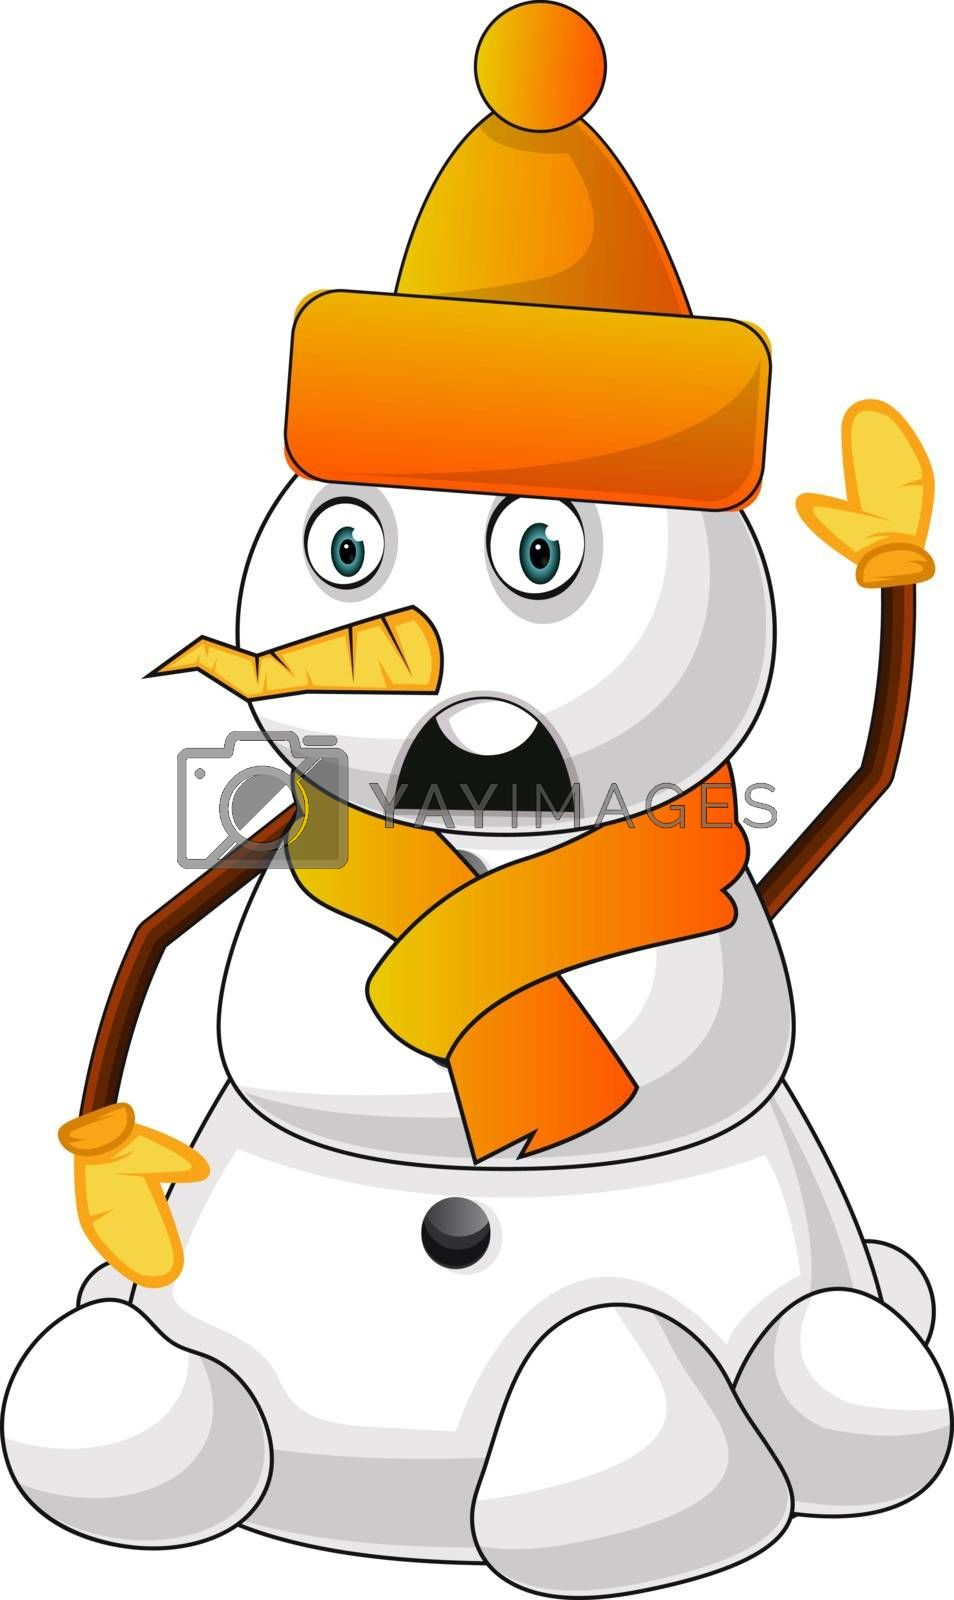 Royalty free image of Snowman with orange hat illustration vector on white background by Morphart